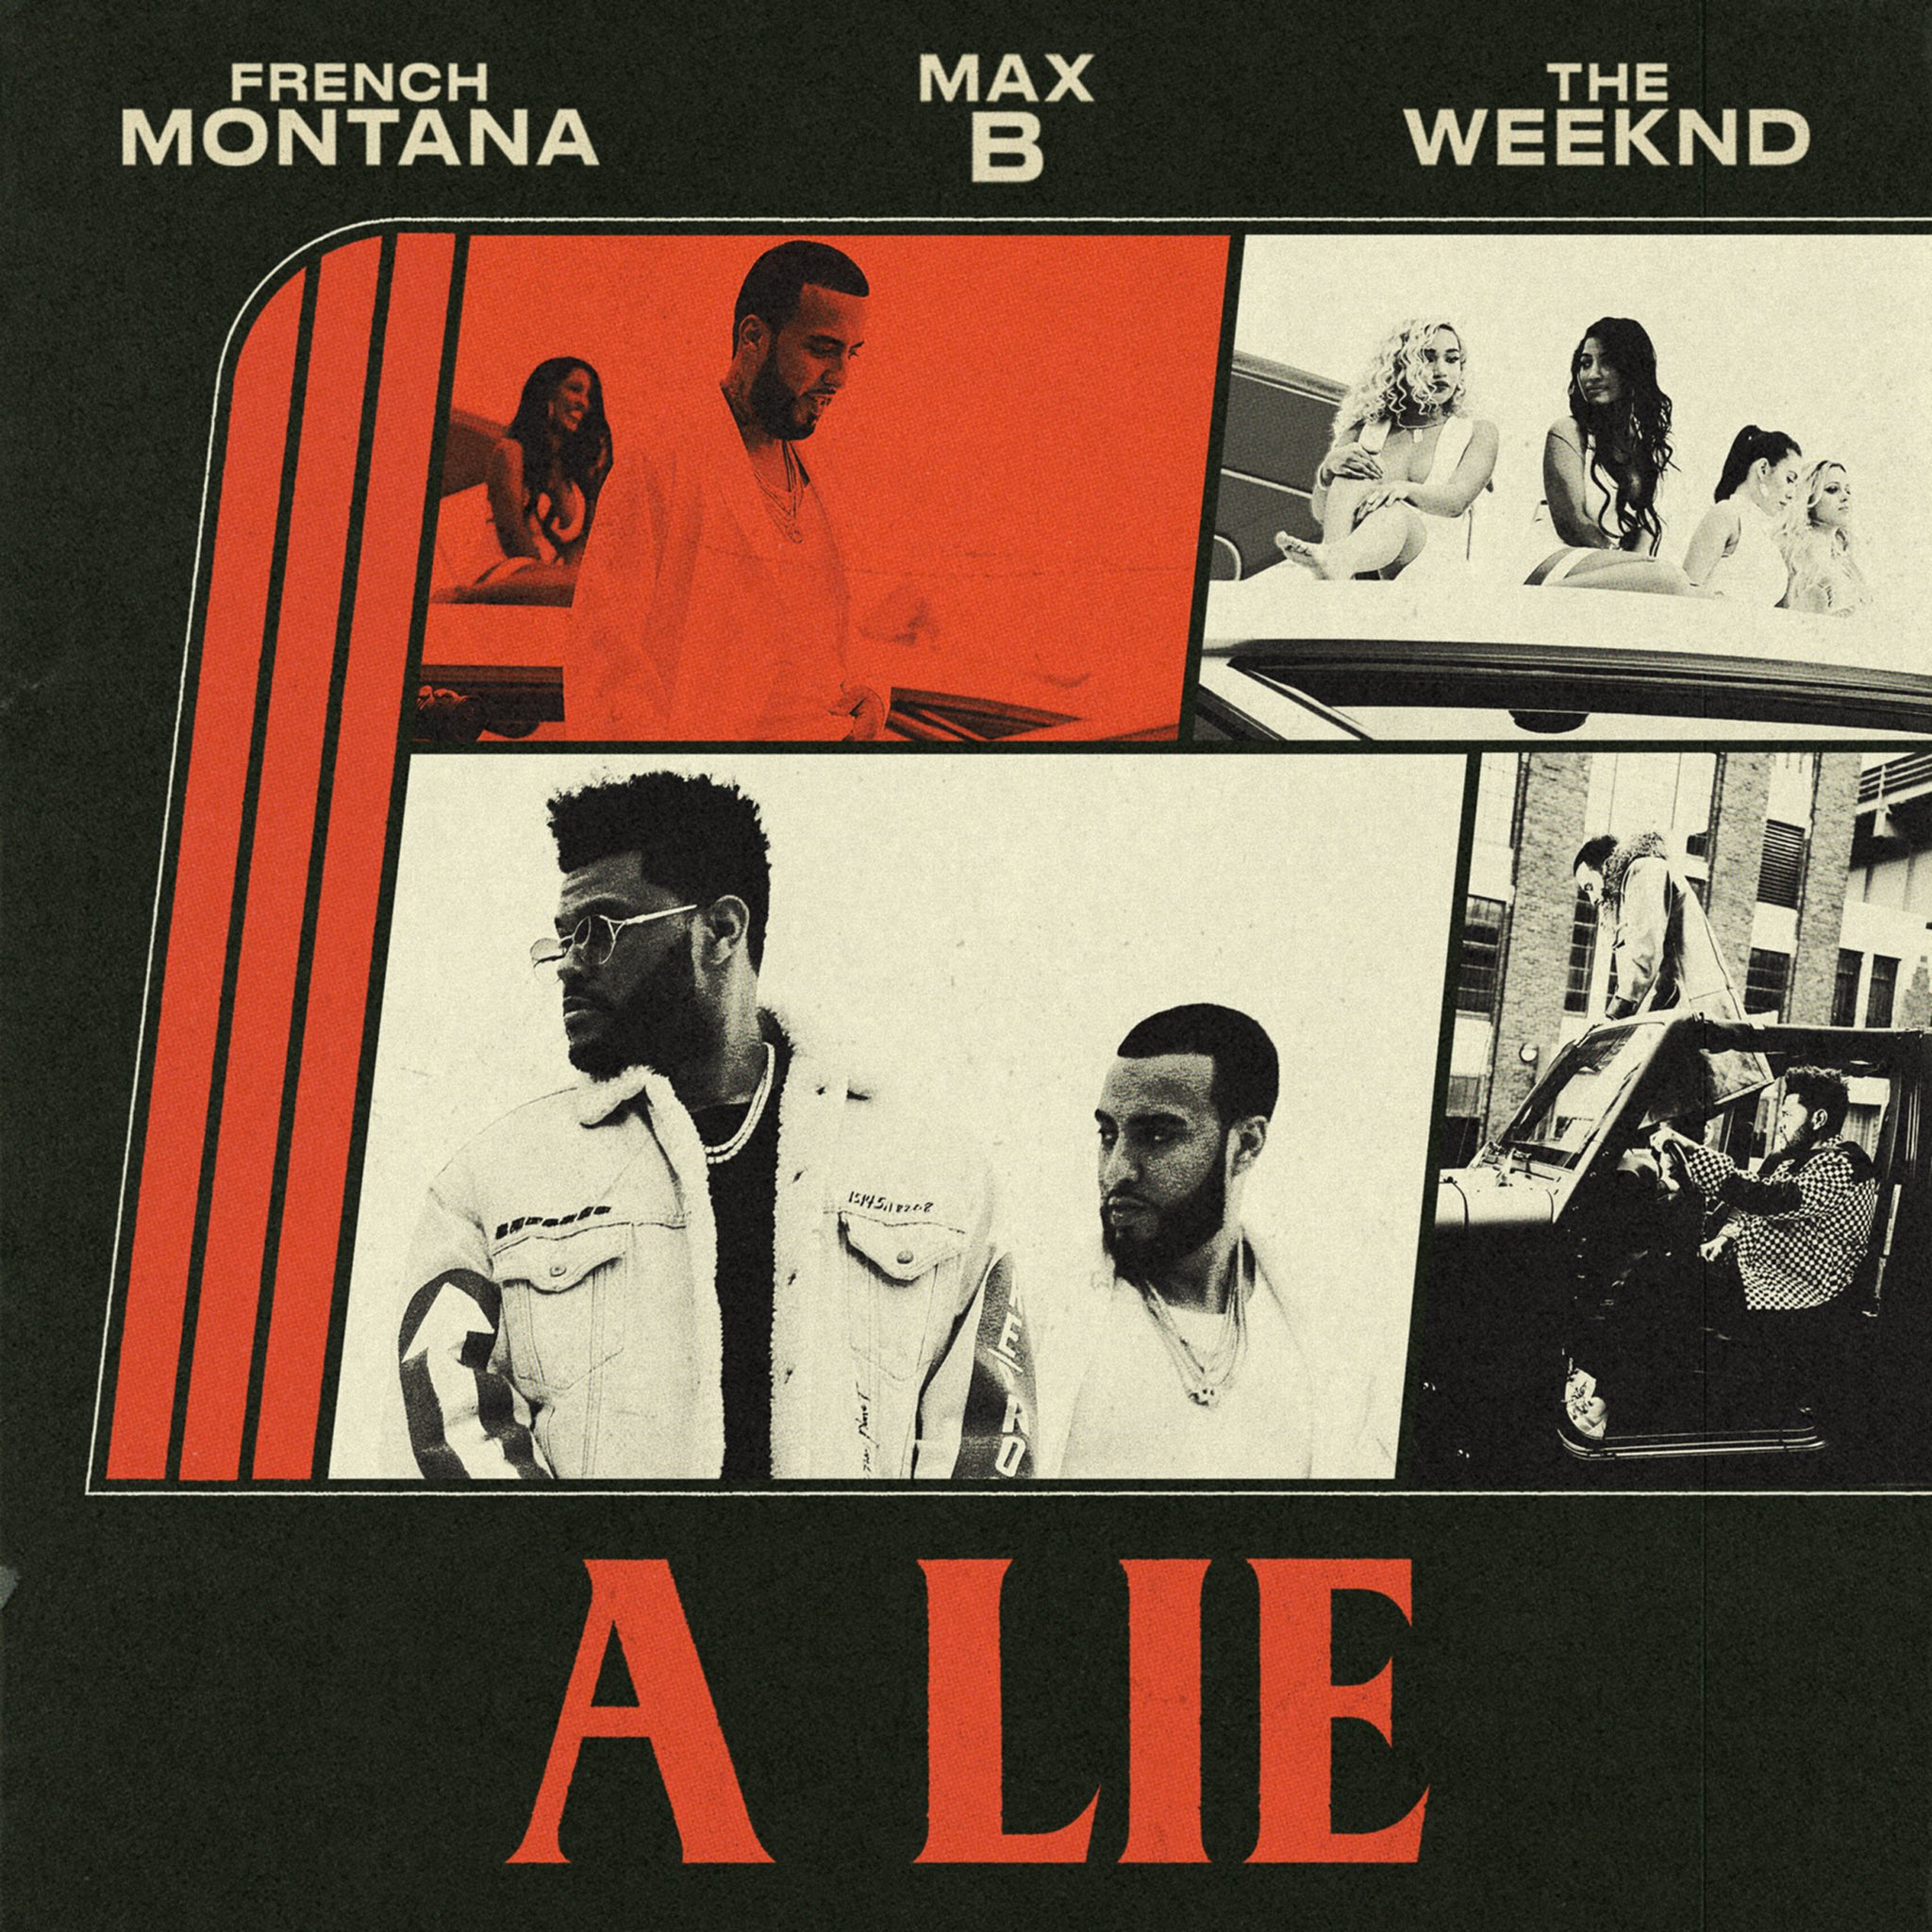 'A Lie' On Friday https://t.co/QIiFC57E4O